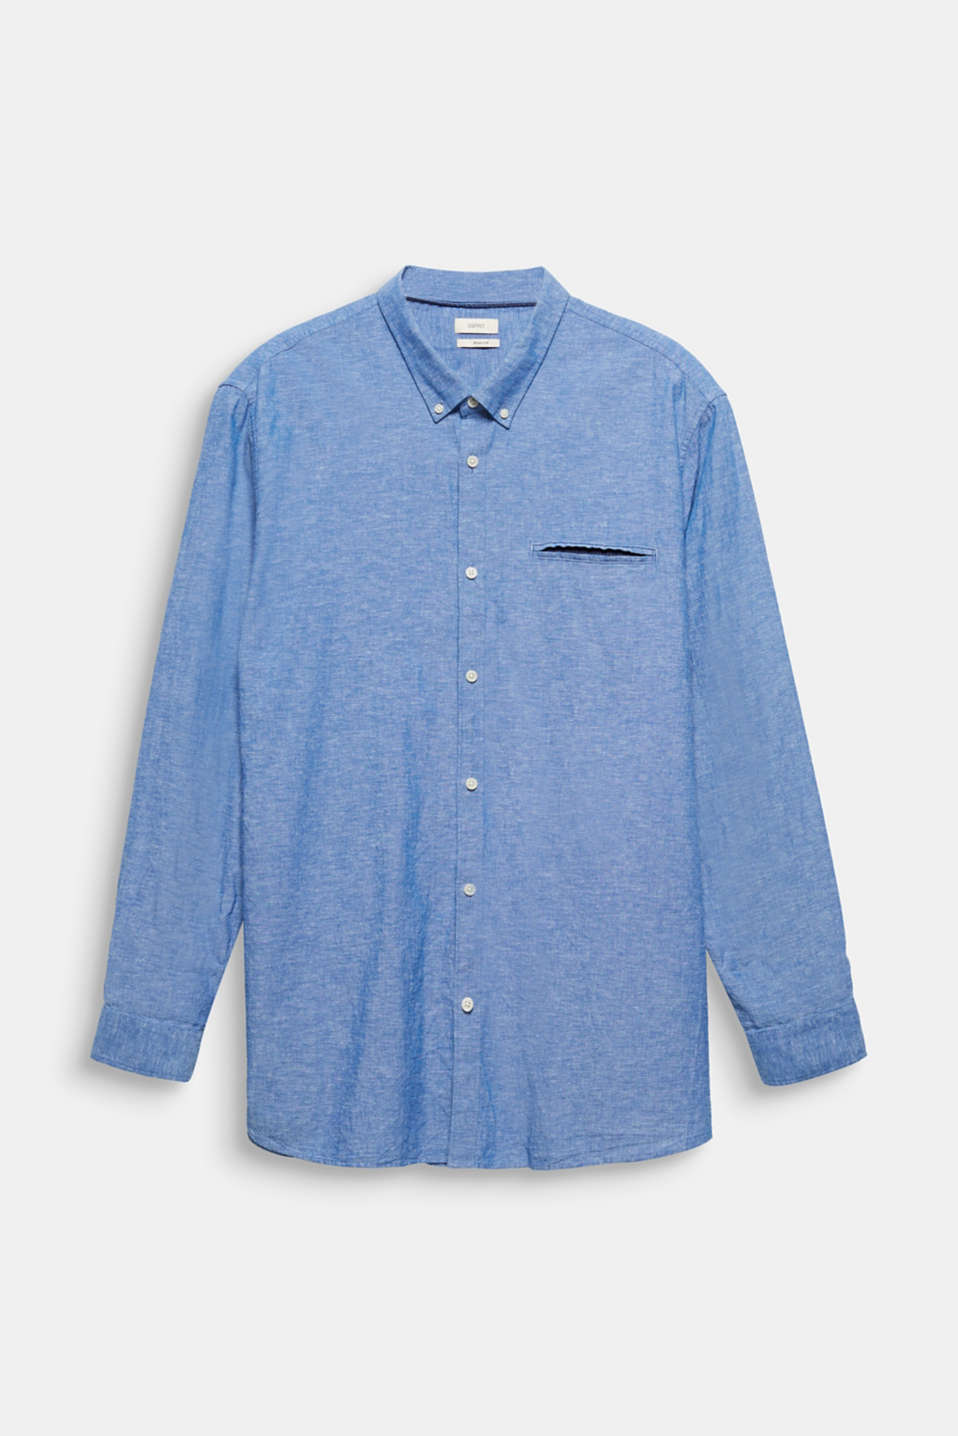 Shirt with linen and a button-down collar, LIGHT BLUE 5, detail image number 7